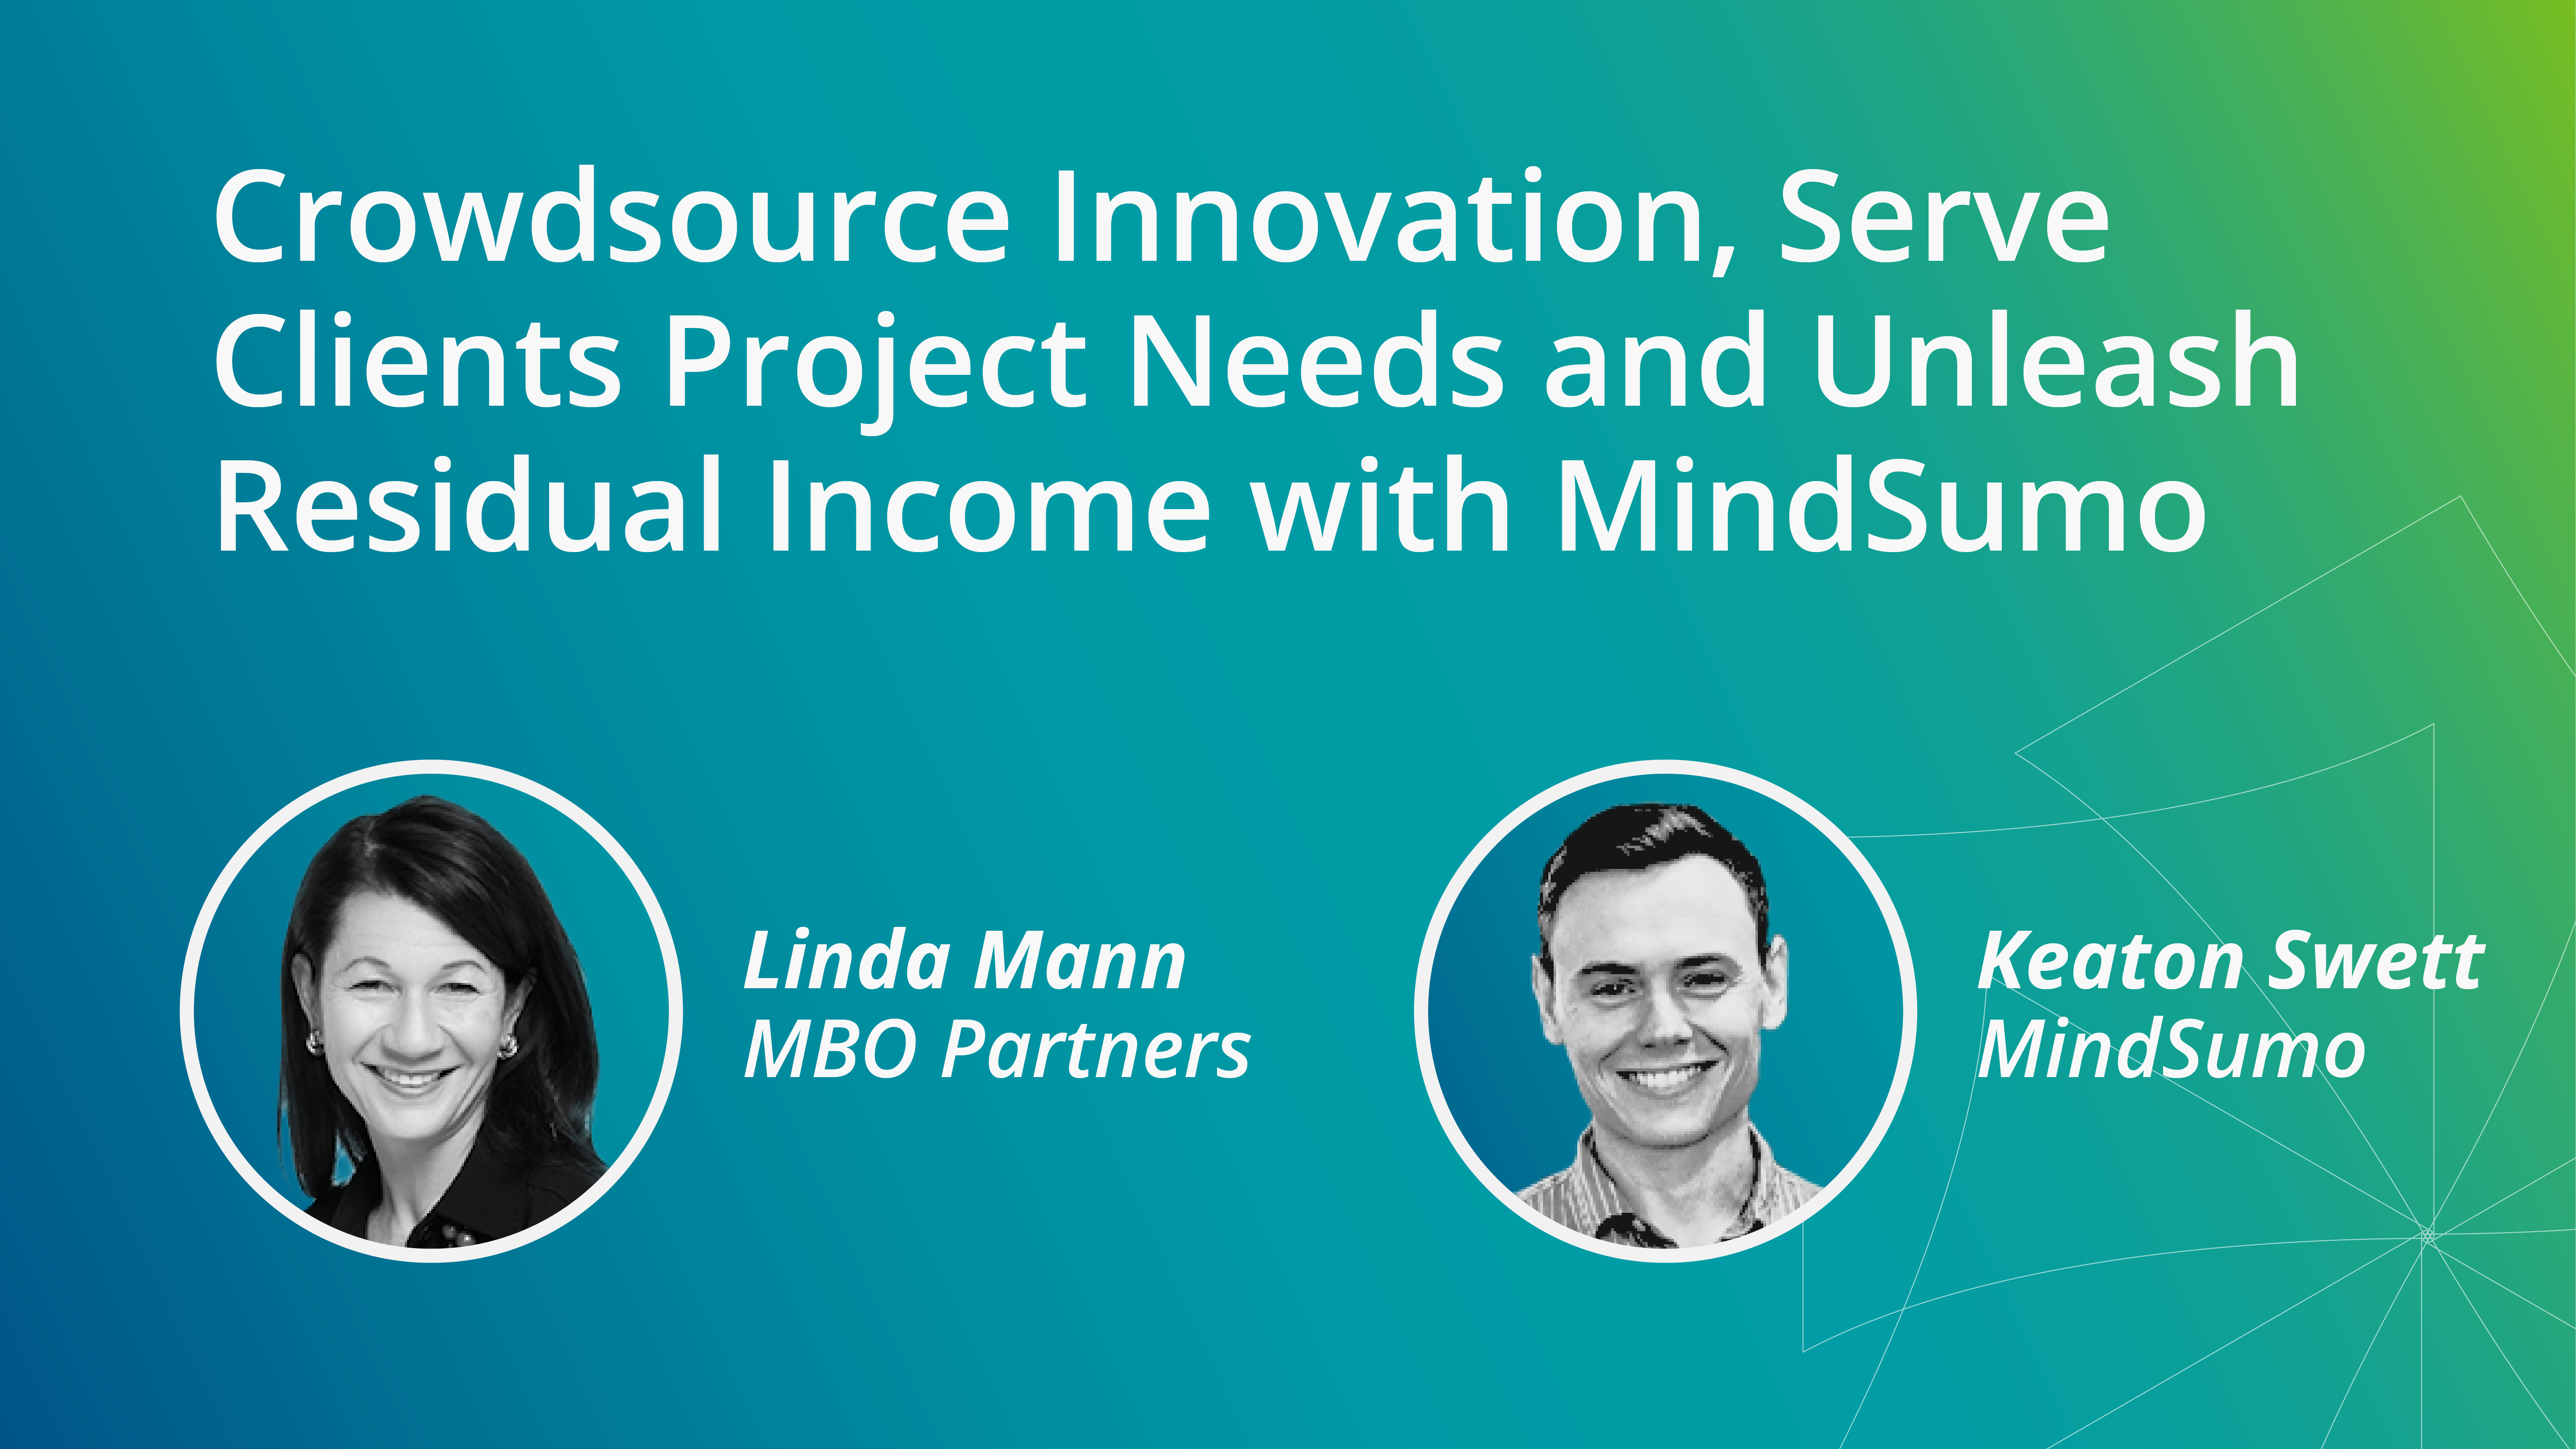 Webinar Recap: Crowdsource Innovation, Serve Clients Project Needs and Unleash Residual Income with MindSumo